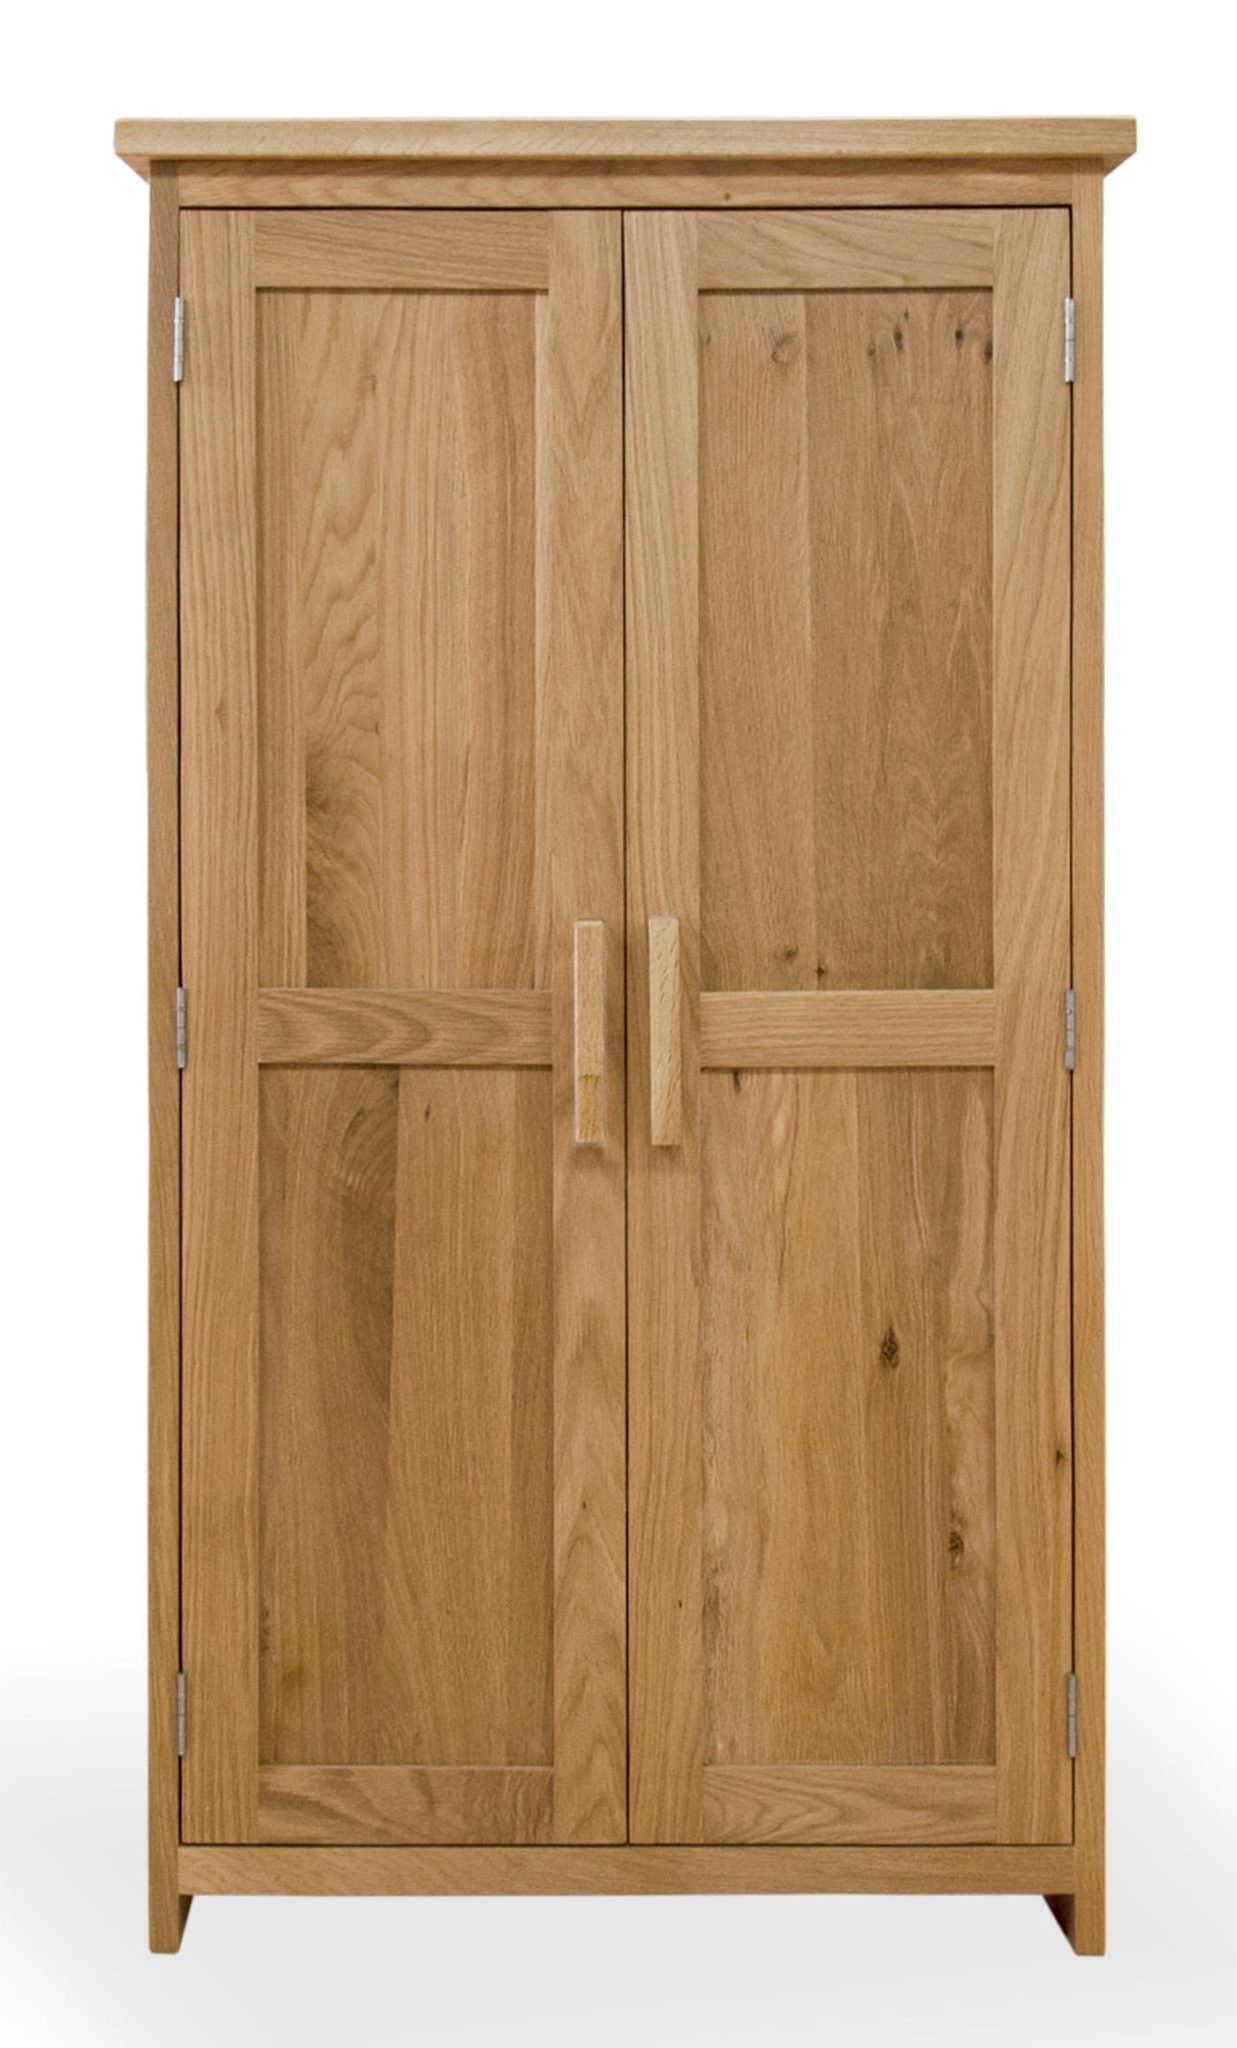 Bury Oak CD/DVD storage cupboard available either with metal or wooden handles